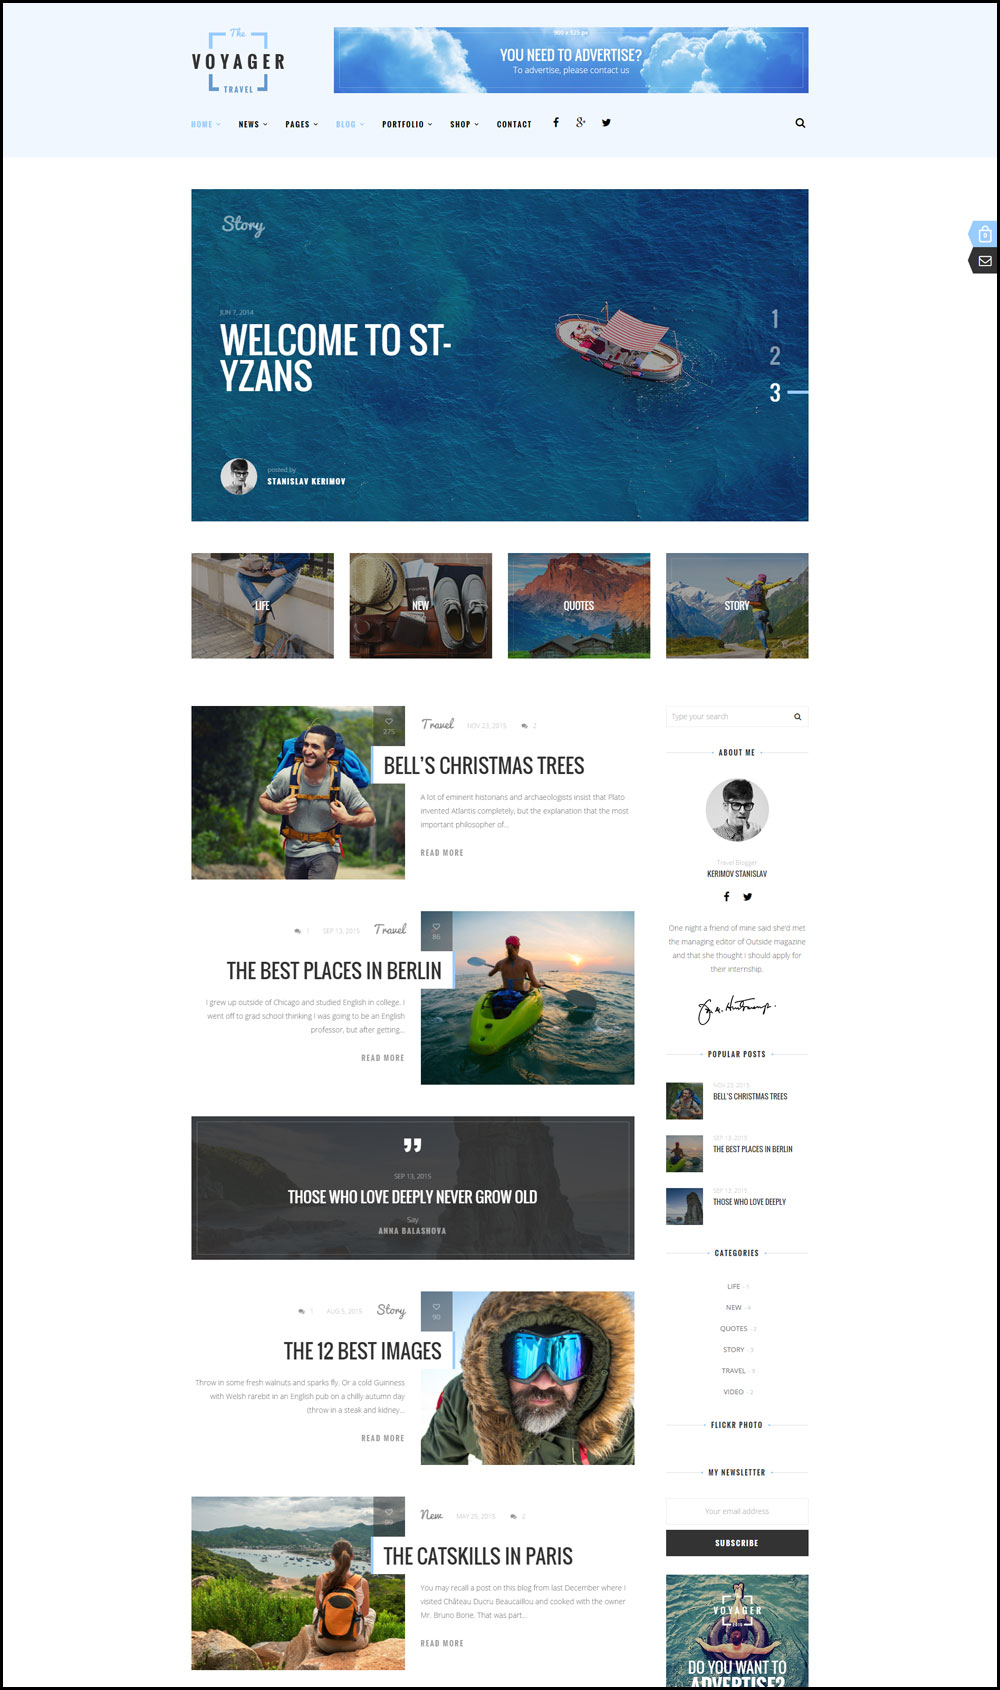 Voyager – A Creative & Light Travel Blog Theme